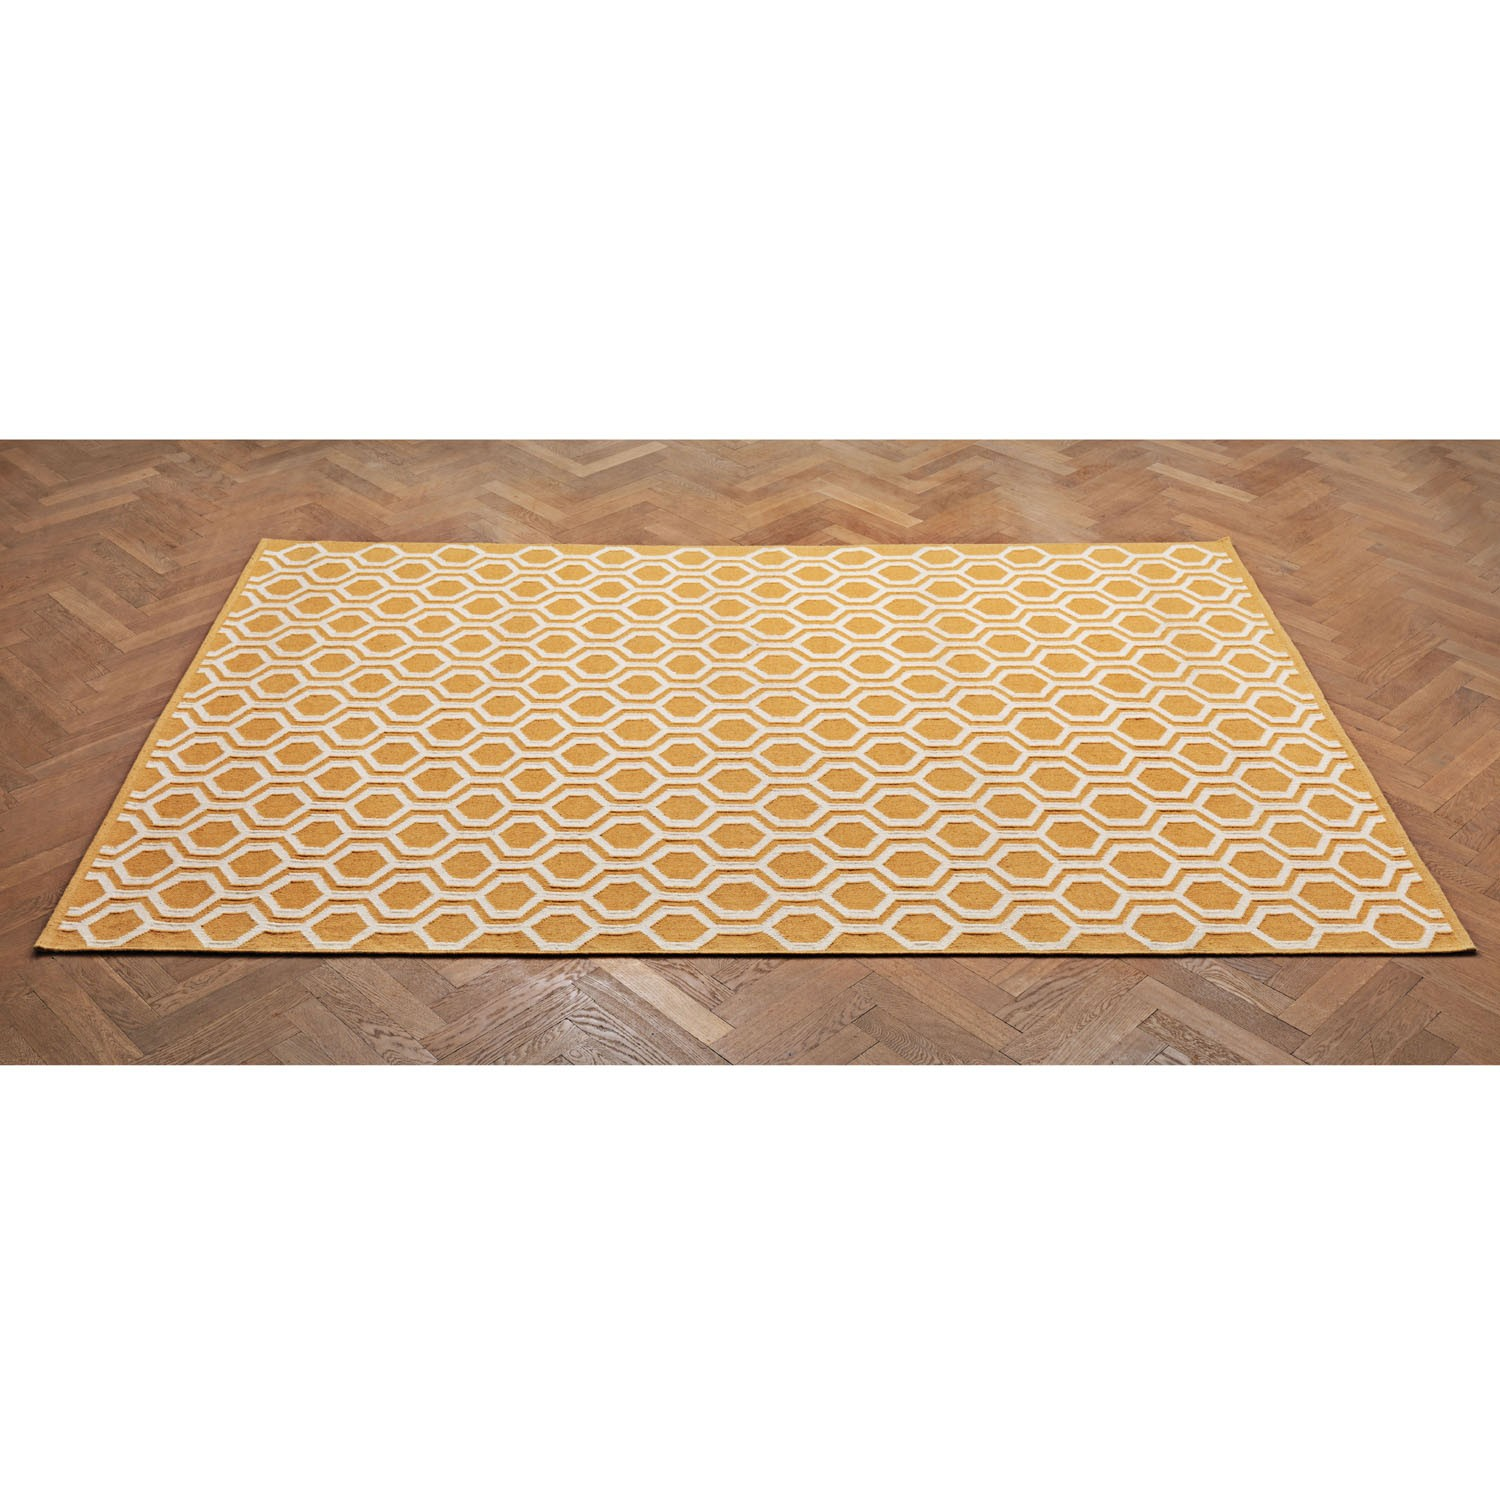 walmart emerging floor area clearance indoor rugs rug outdoor amusing